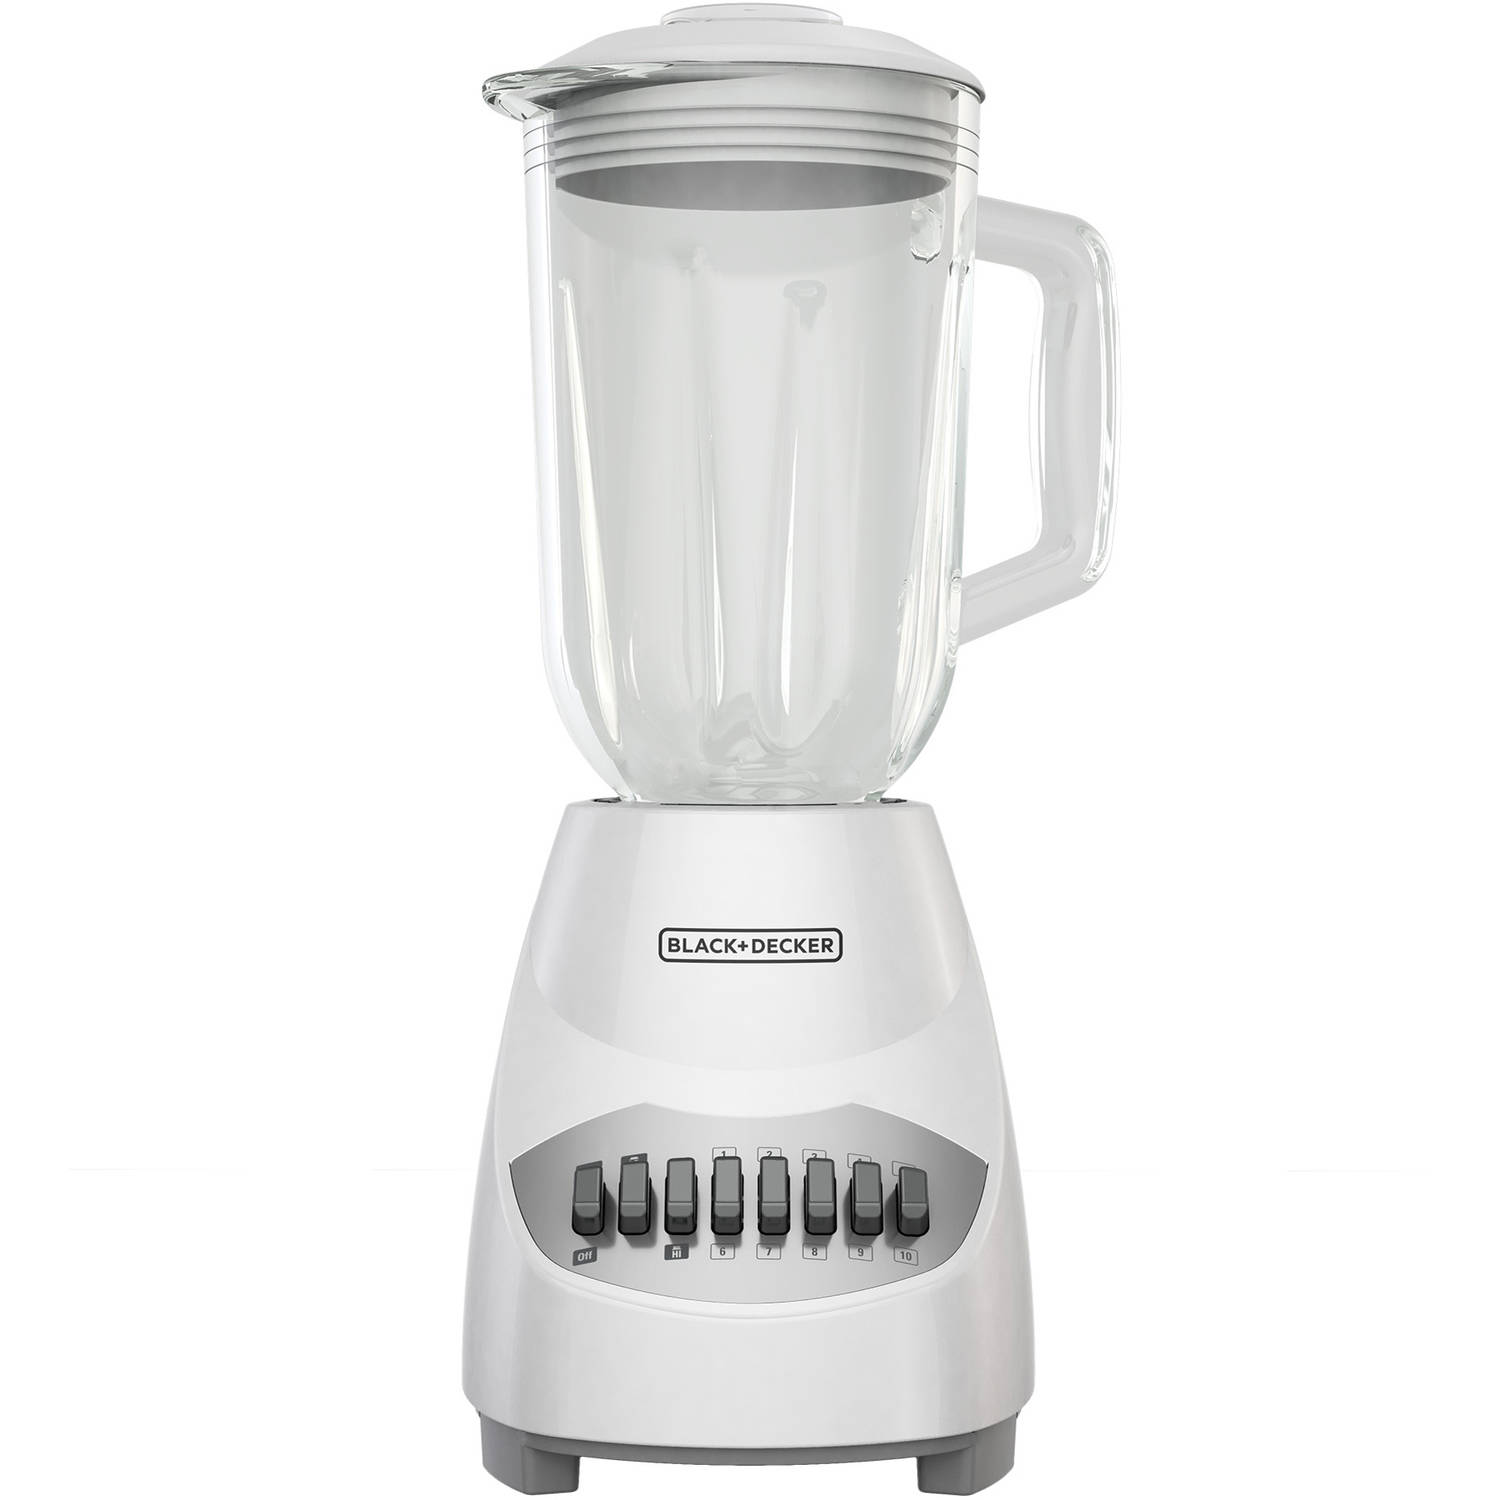 Black & Decker 10-Speed Blender, White